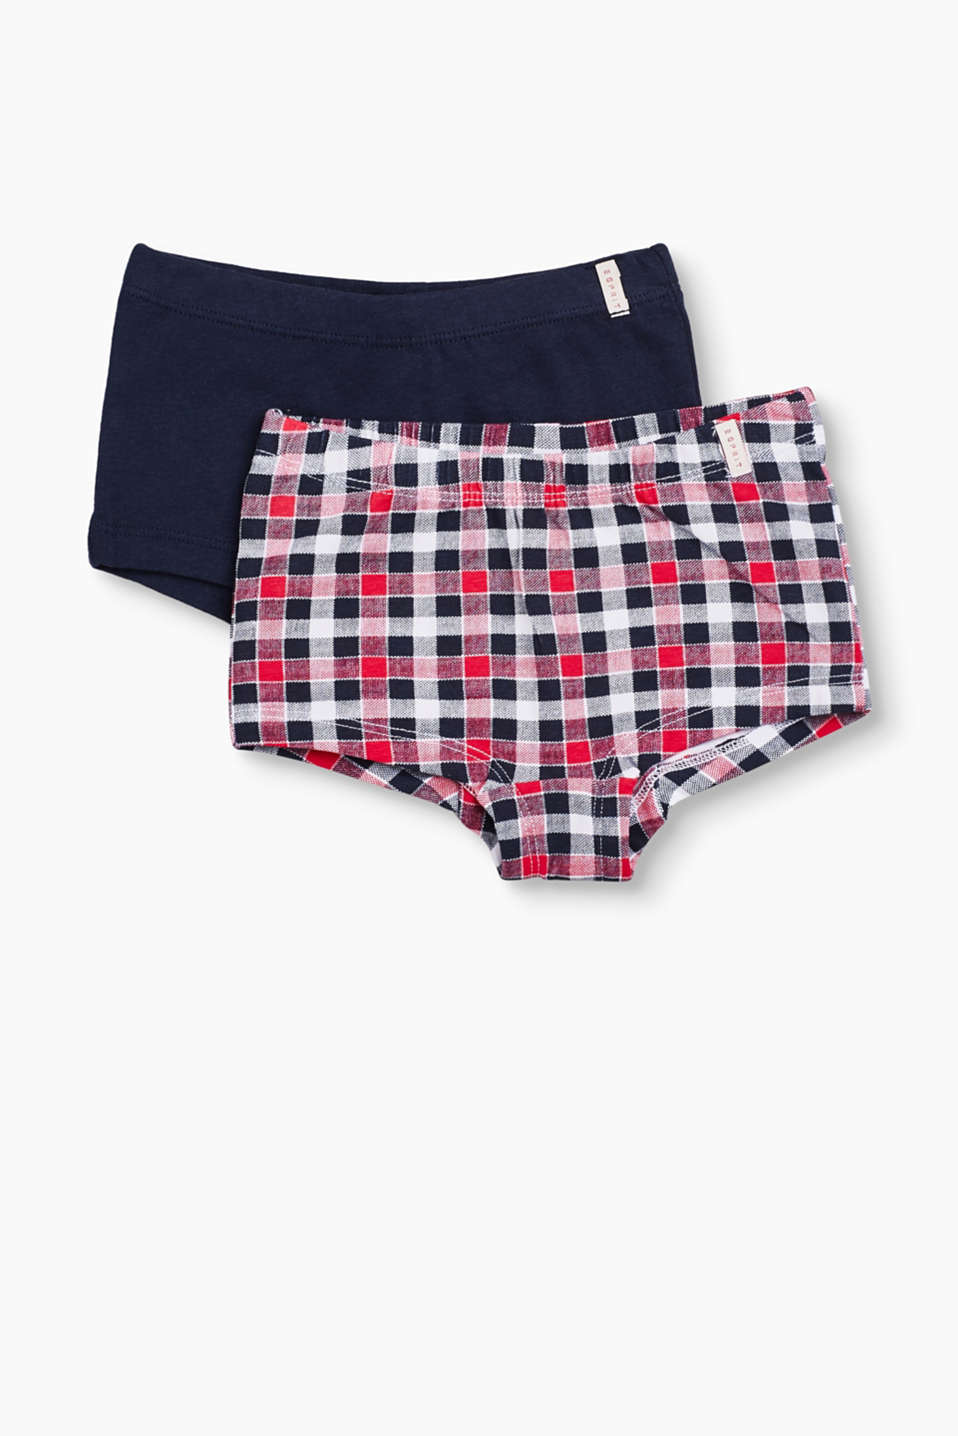 Plain or checked: Either way, these boxer shorts made of stretch cotton are super comfortable